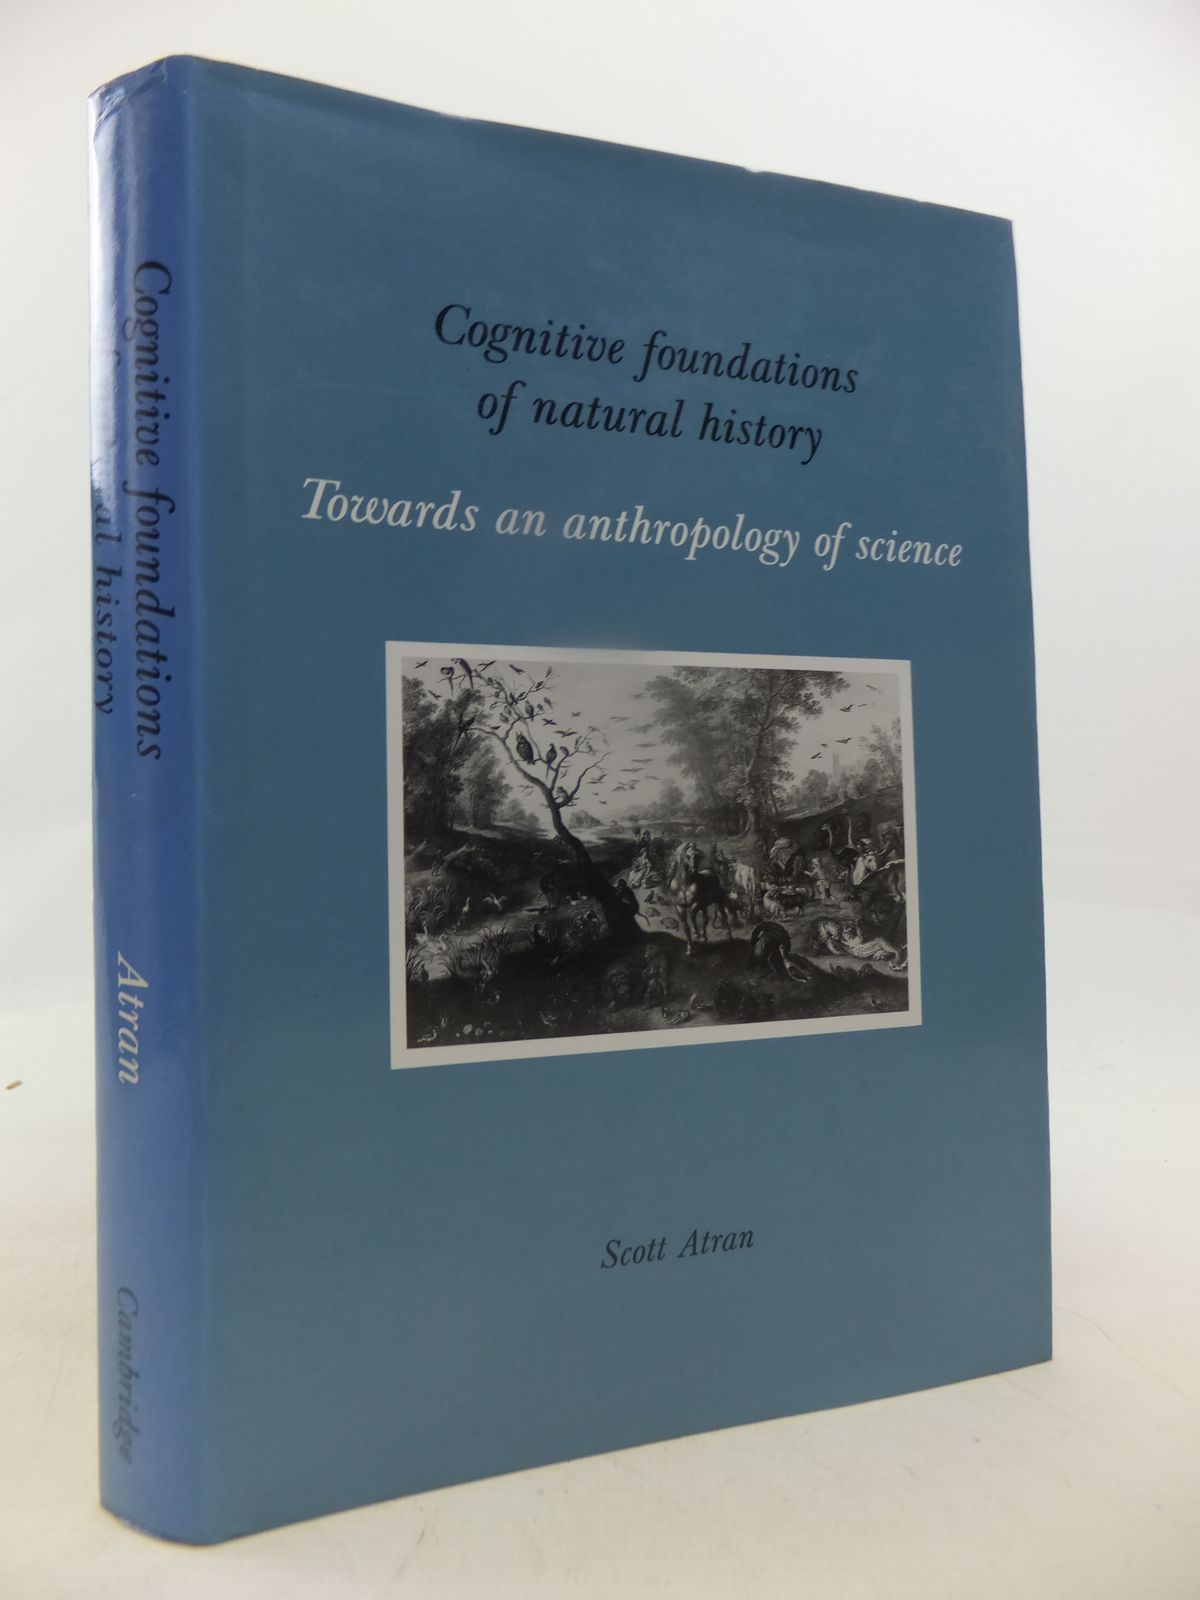 Photo of COGNITIVE FOUNDATIONS OF NATURAL HISTORY TOWARDS AN ANTROPOLOGY OF SCIENCE written by Atran, Scott published by Cambridge University Press (STOCK CODE: 1809431)  for sale by Stella & Rose's Books